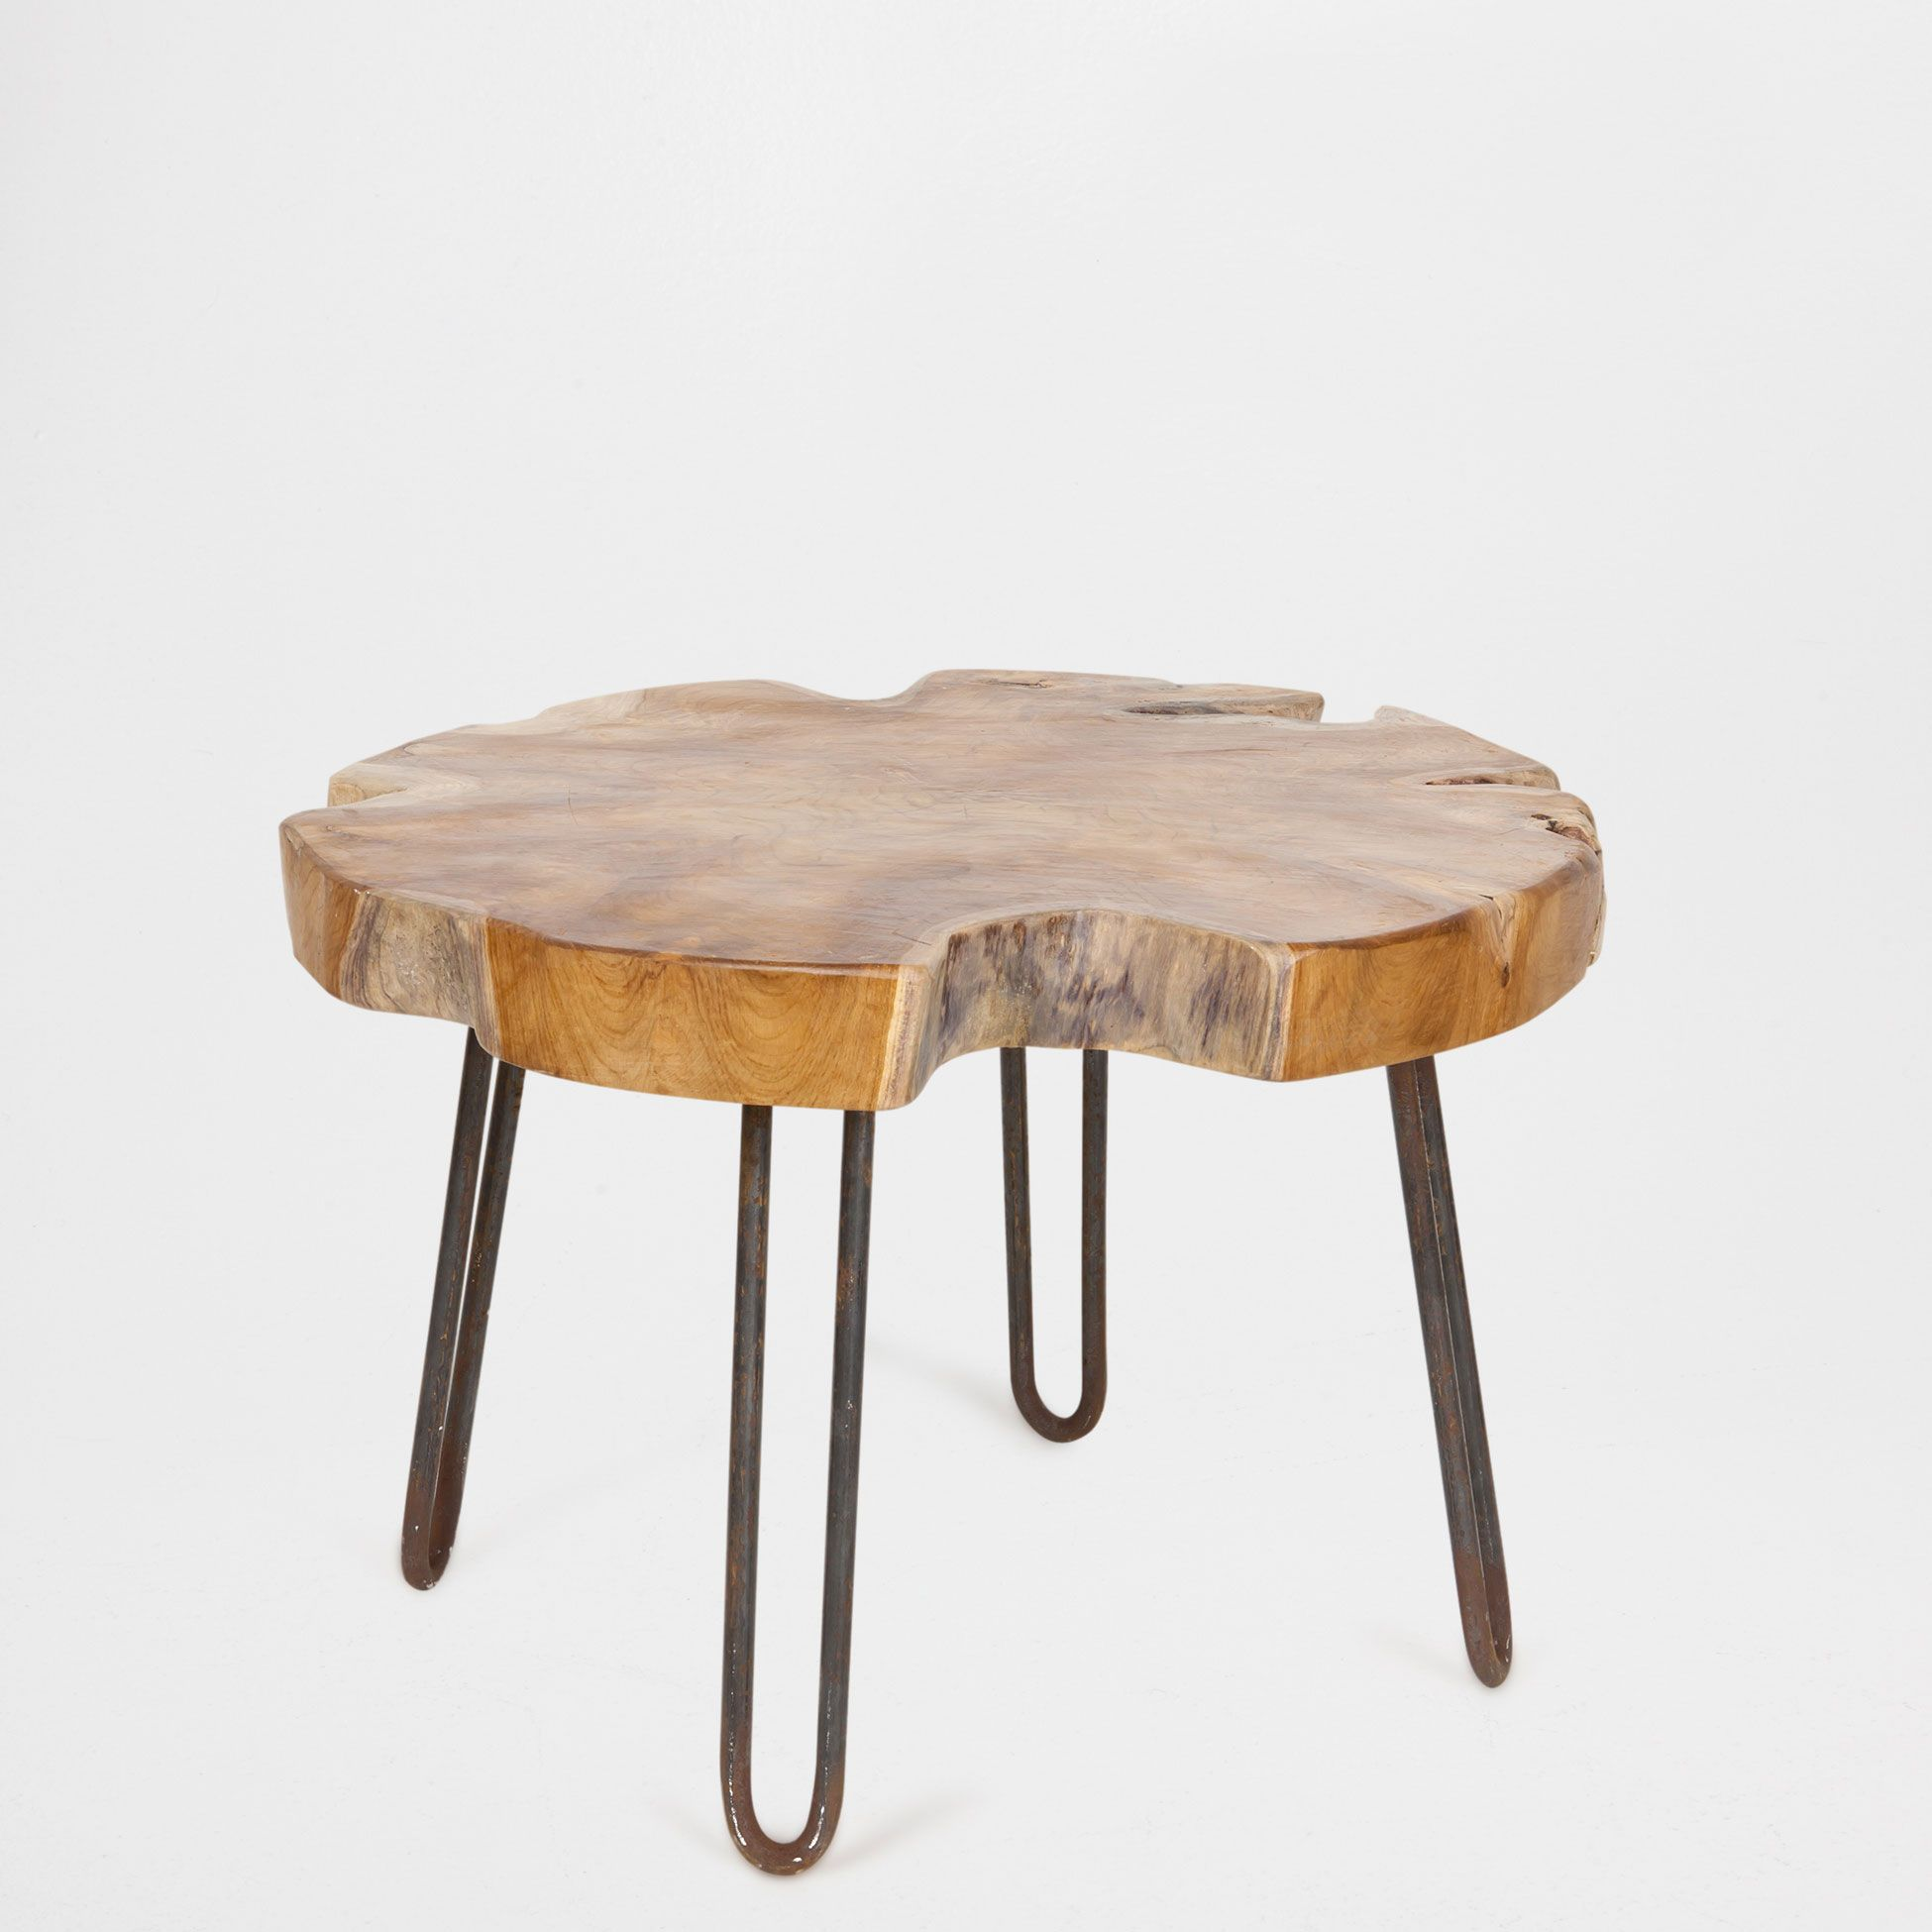 SMALL TRUNK SHAPED WOODEN TABLE Occasional Furniture